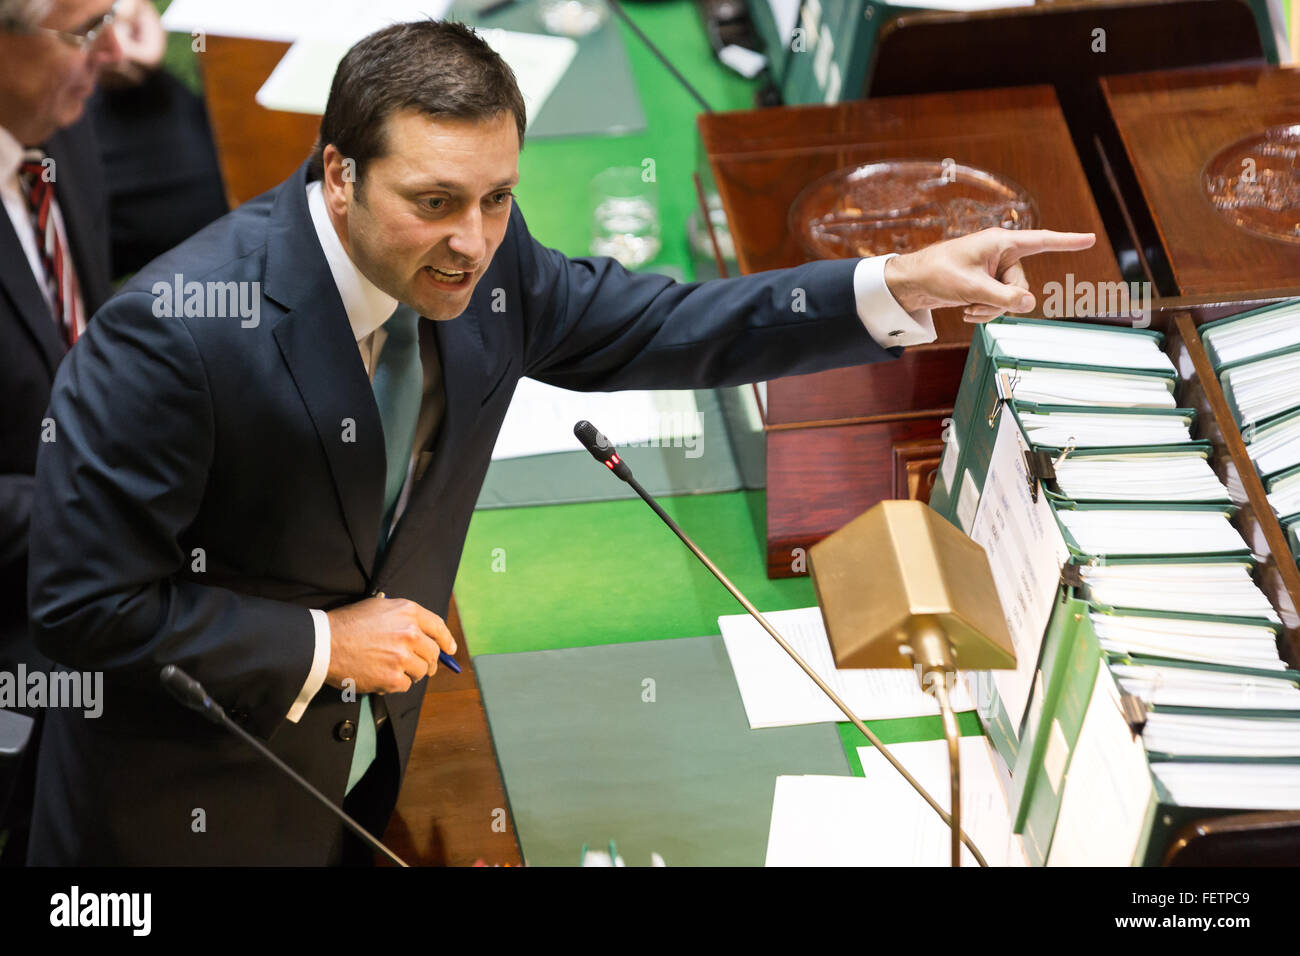 Melbourne, Australia. 9th February, 2016. The leader of the Opposition, Matthew Guy grills the government level - Stock Image